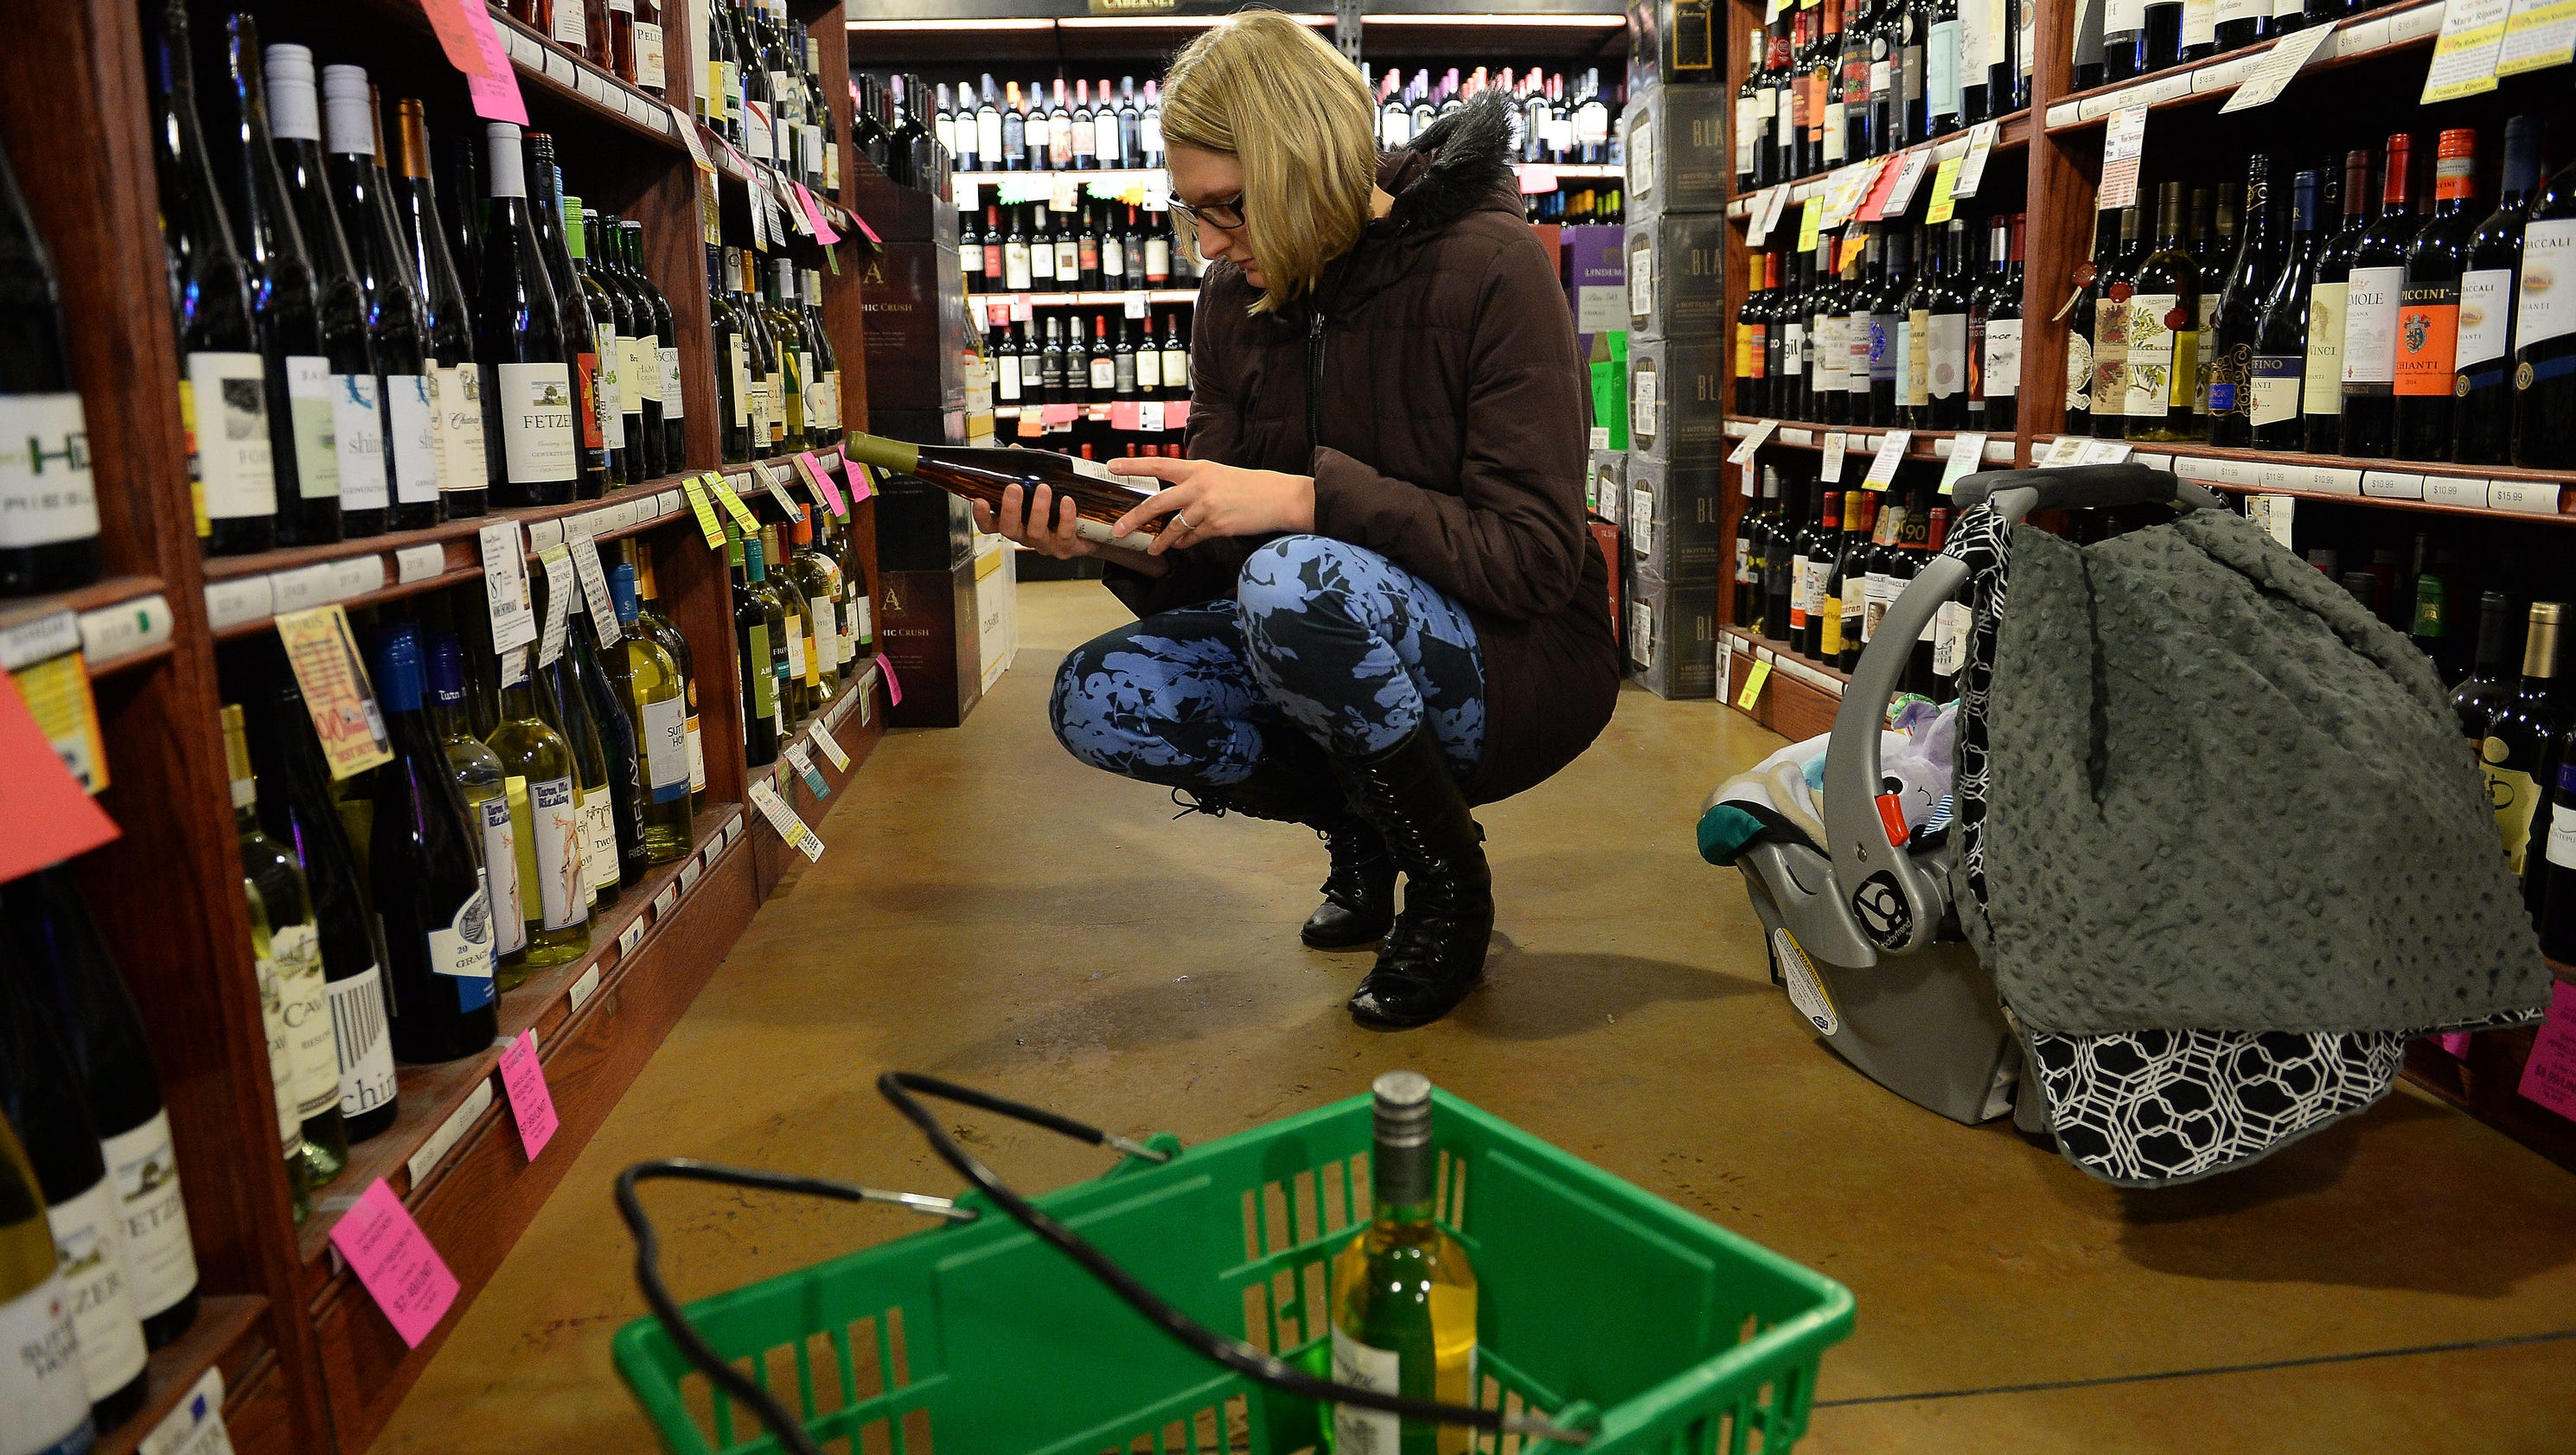 4 things to know about Colorado's new liquor laws